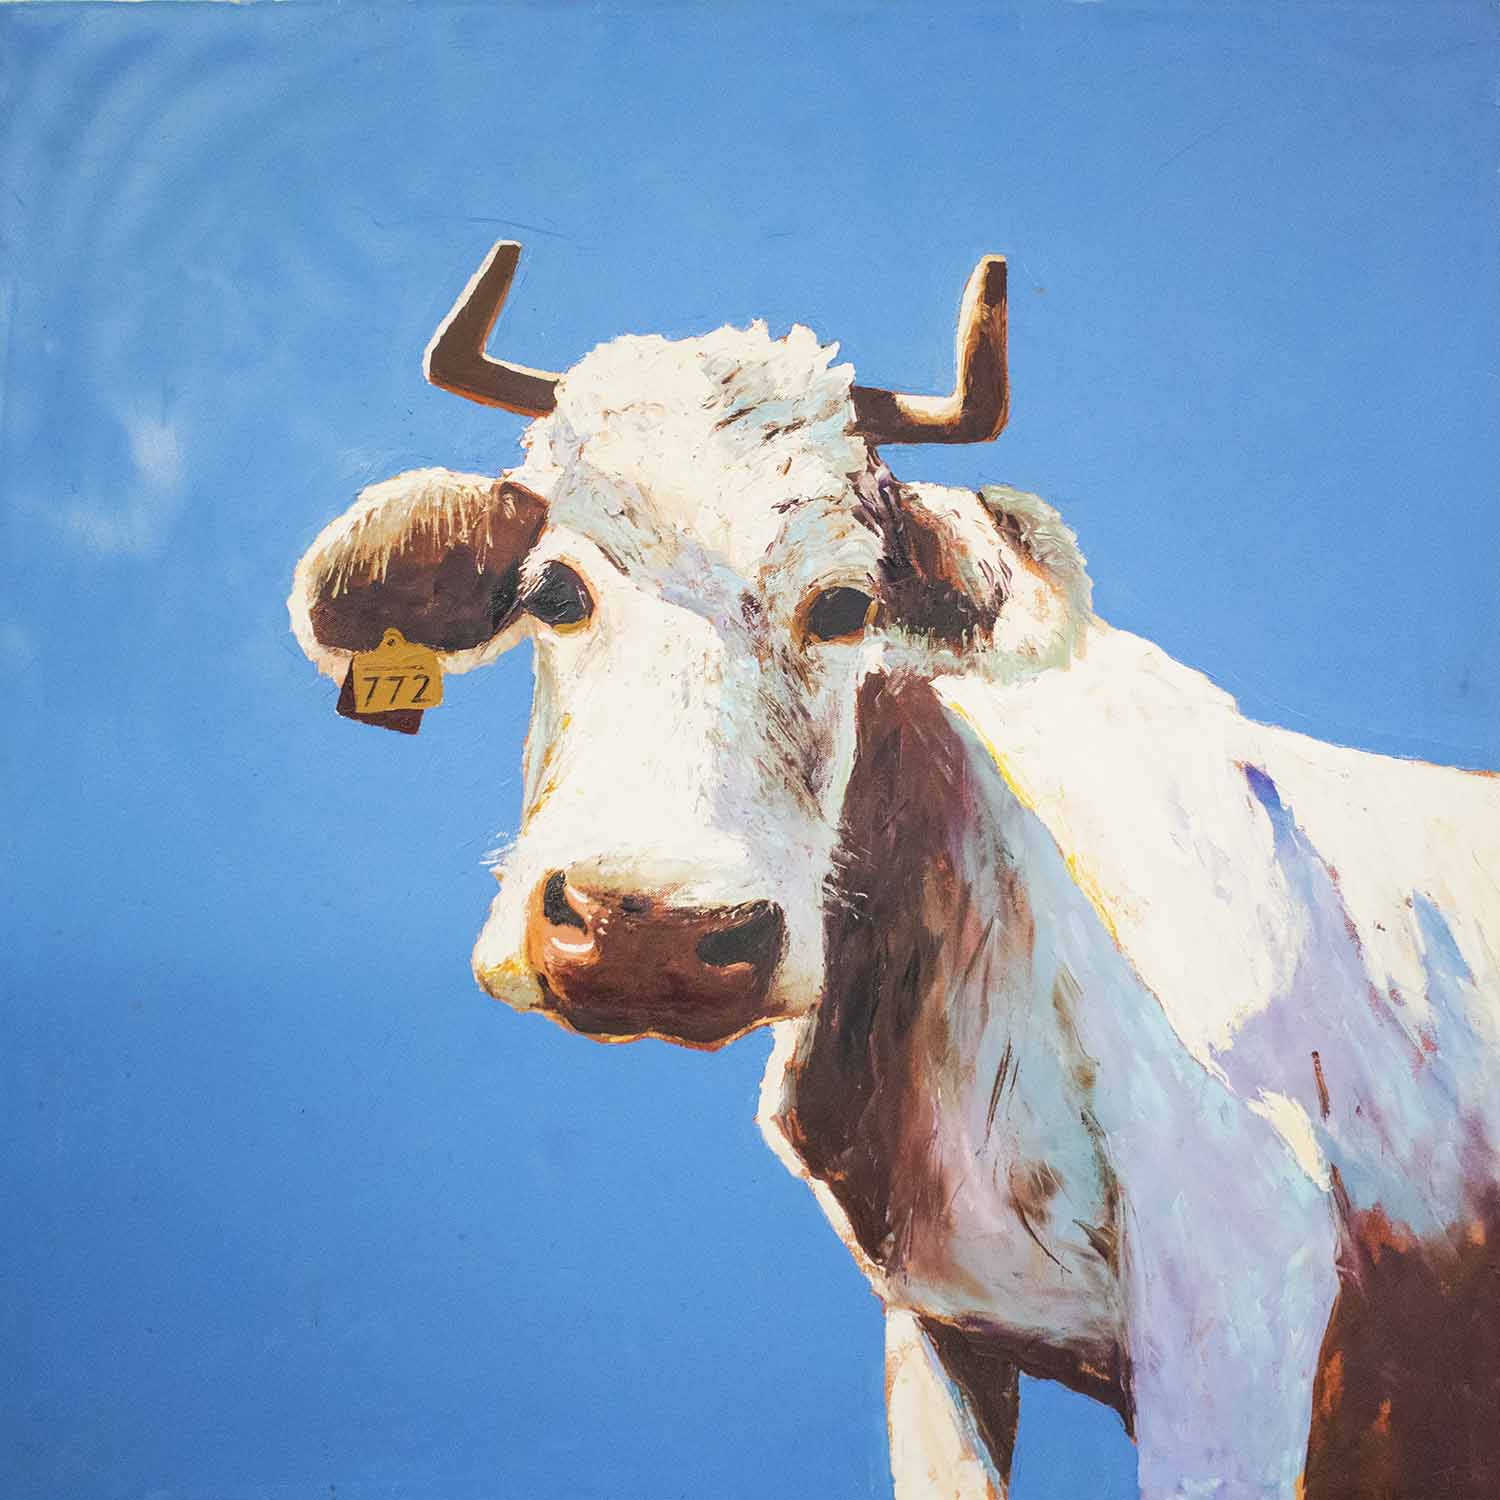 Lot 72 - CONTEMPORARY OIL ON CANVAS, , Bull with tag '772', signed 'JS 03', 100cm x 100cm.